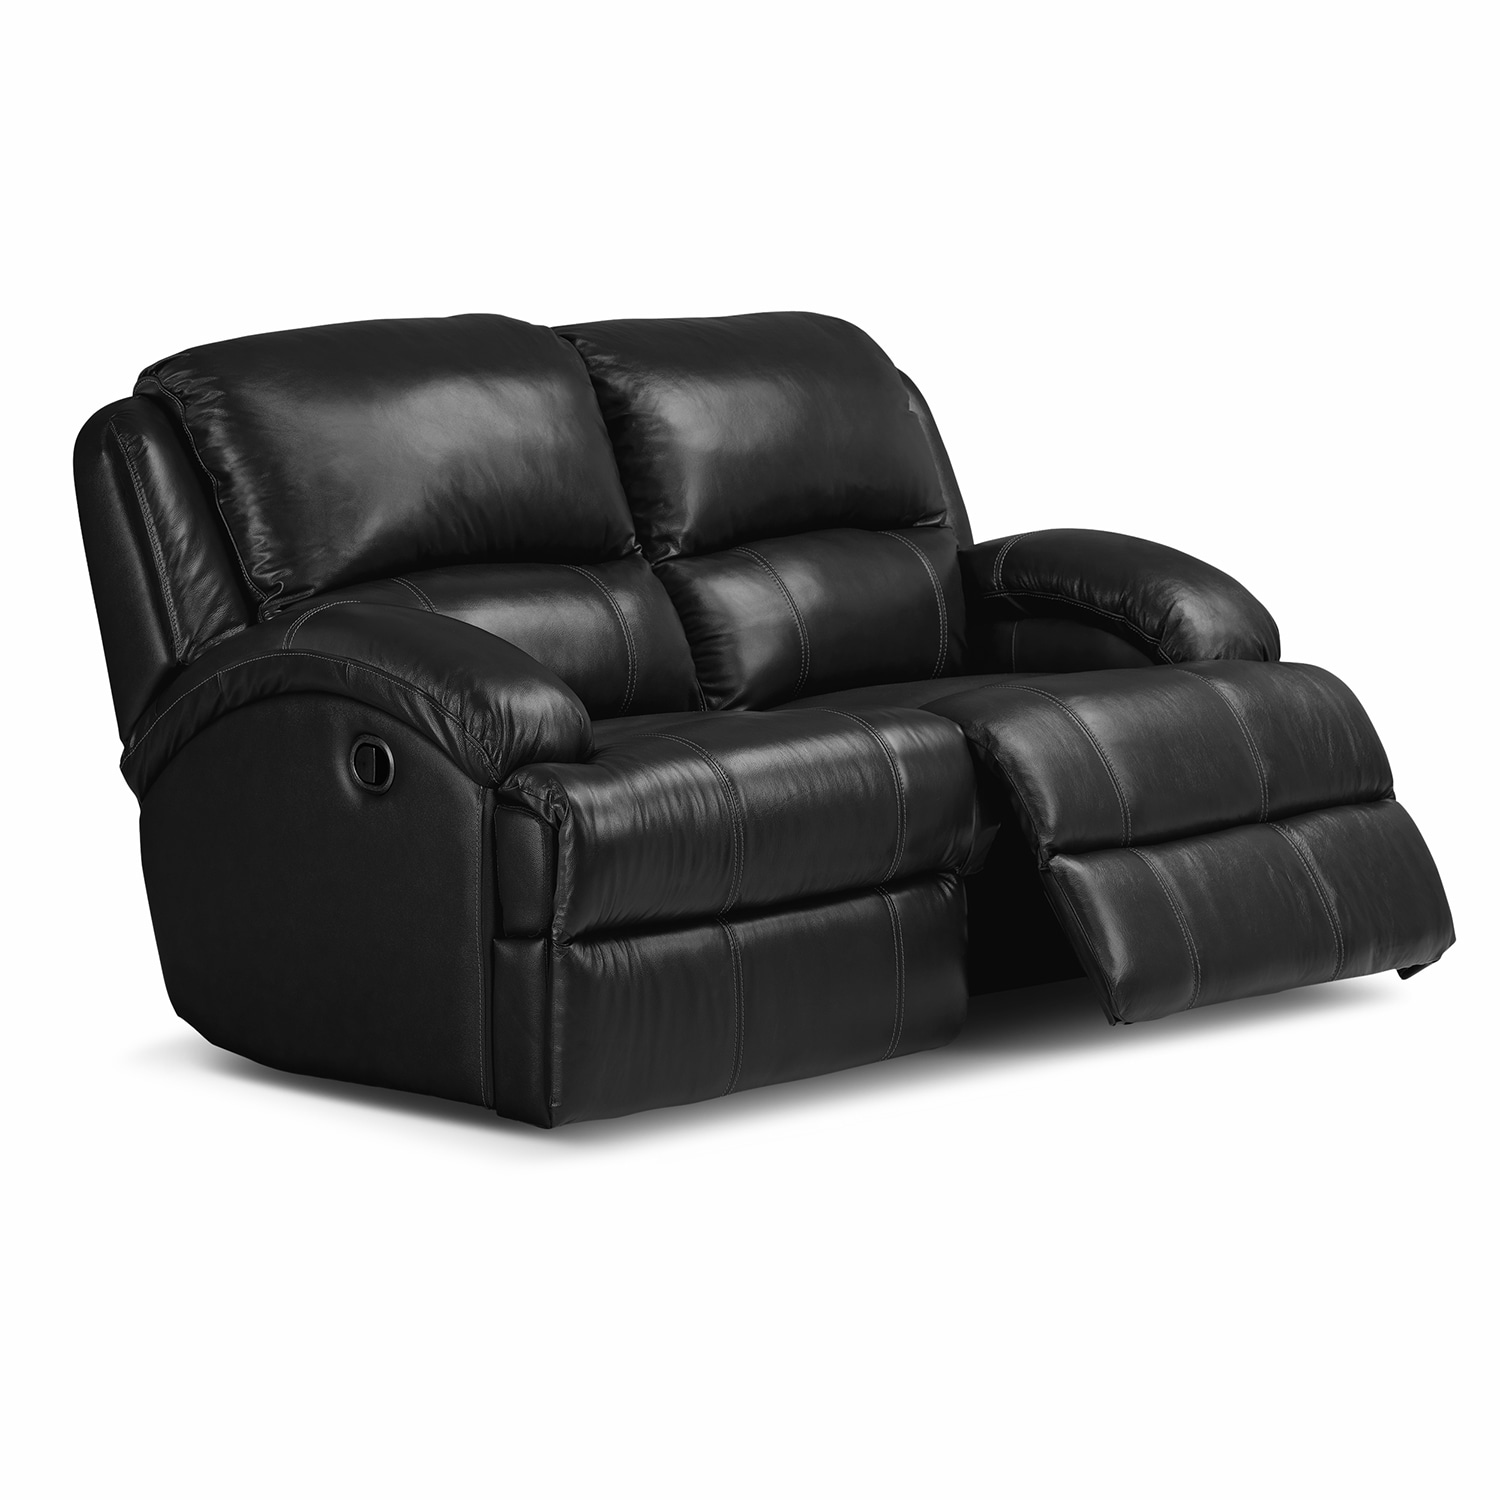 Nolan Ii Leather Dual Reclining Loveseat Value City Furniture